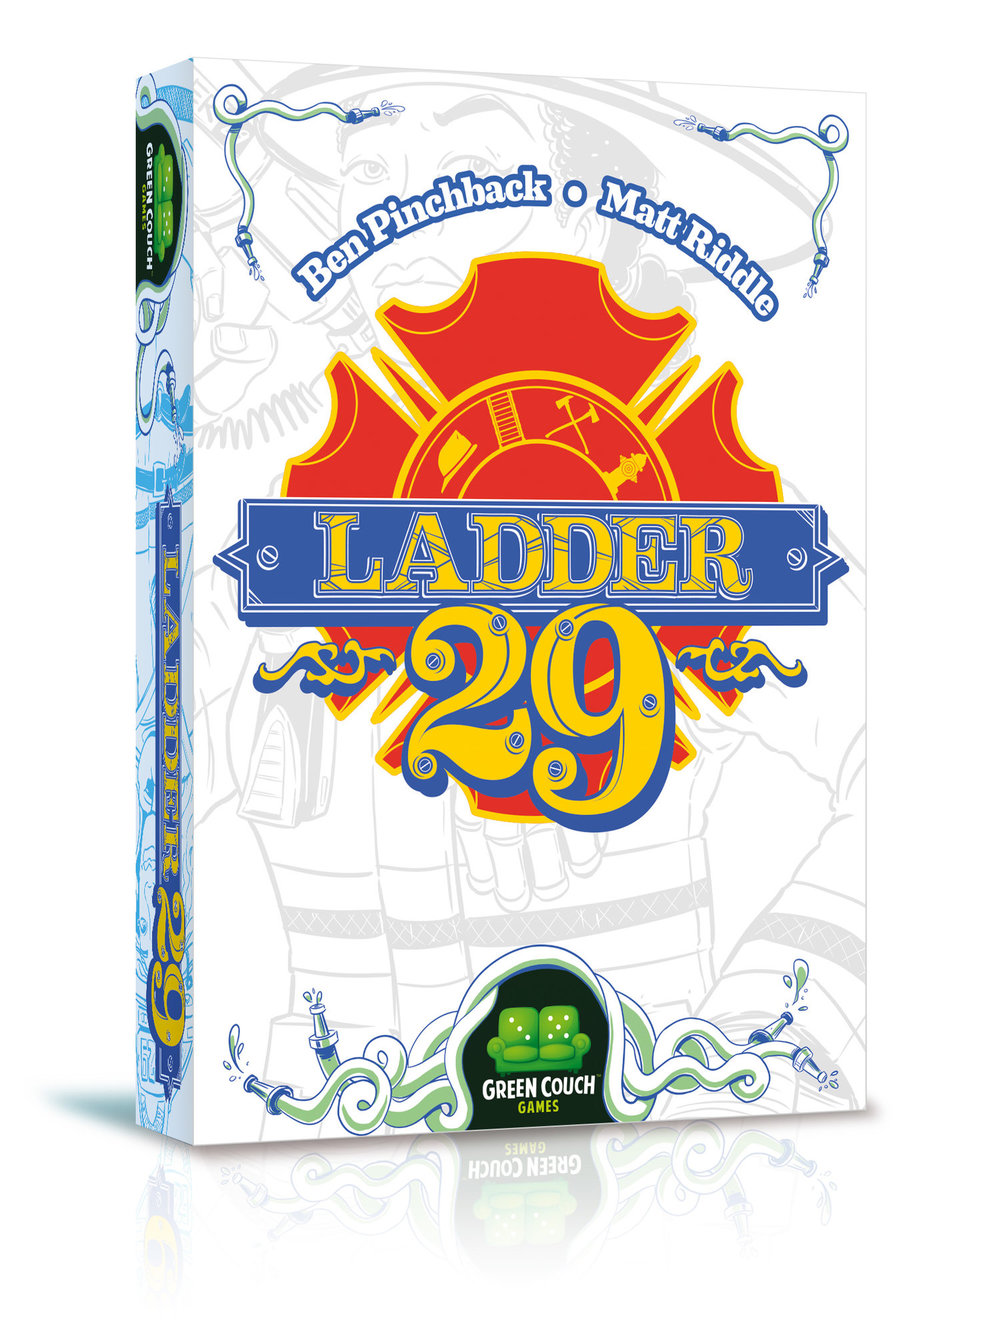 Ladder29 3d Box.jpg